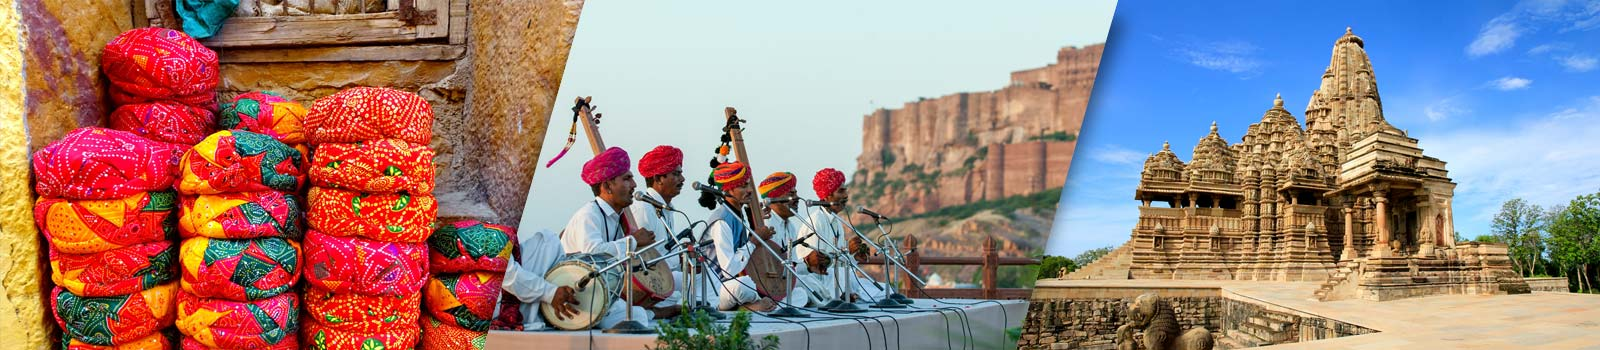 India Cultural Heritage Tours, India Cultural Heritage